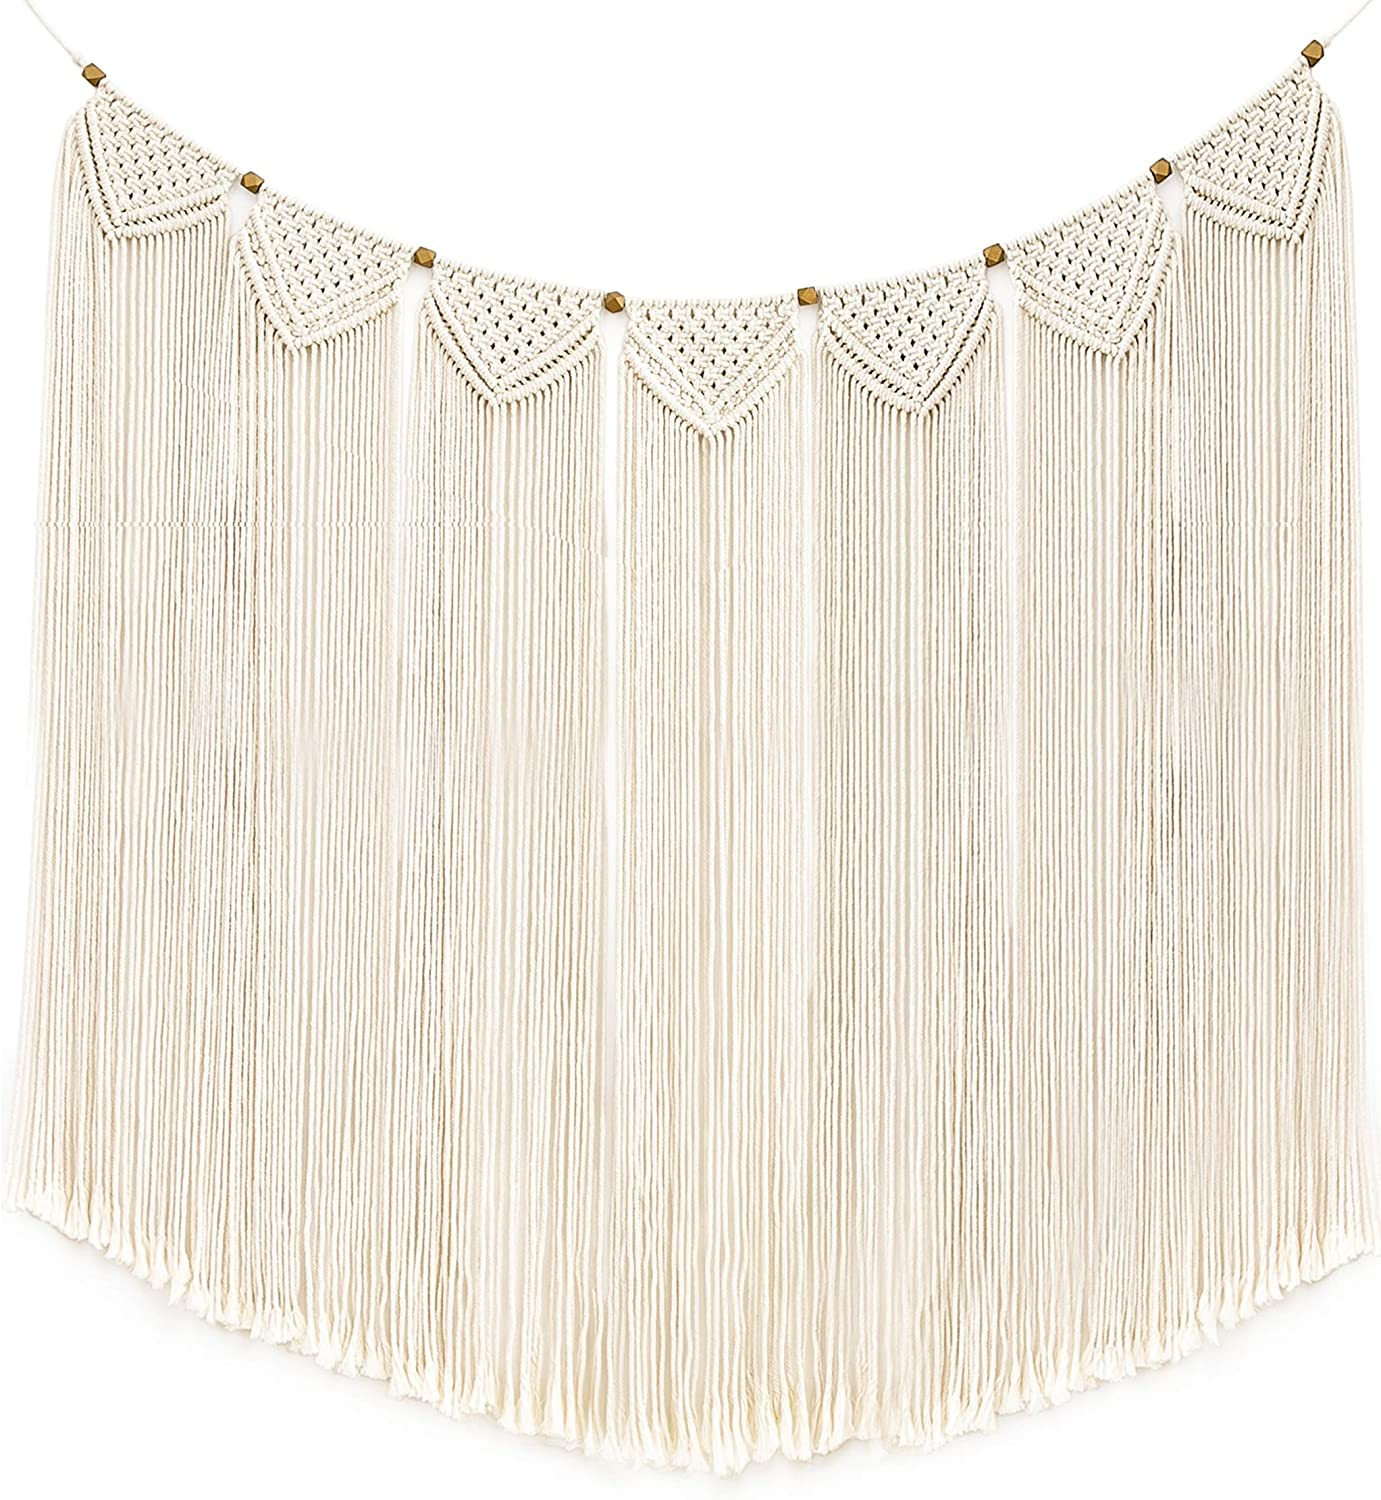 """Mkono Large Macrame Wall Hanging Boho Tapestry Curtain Fringe Woven Bohemian Wall Decor Banner Home Decoration for Apartment Bedroom Living Room Gallery Baby Nursery, 47"""" L X 28"""" W"""